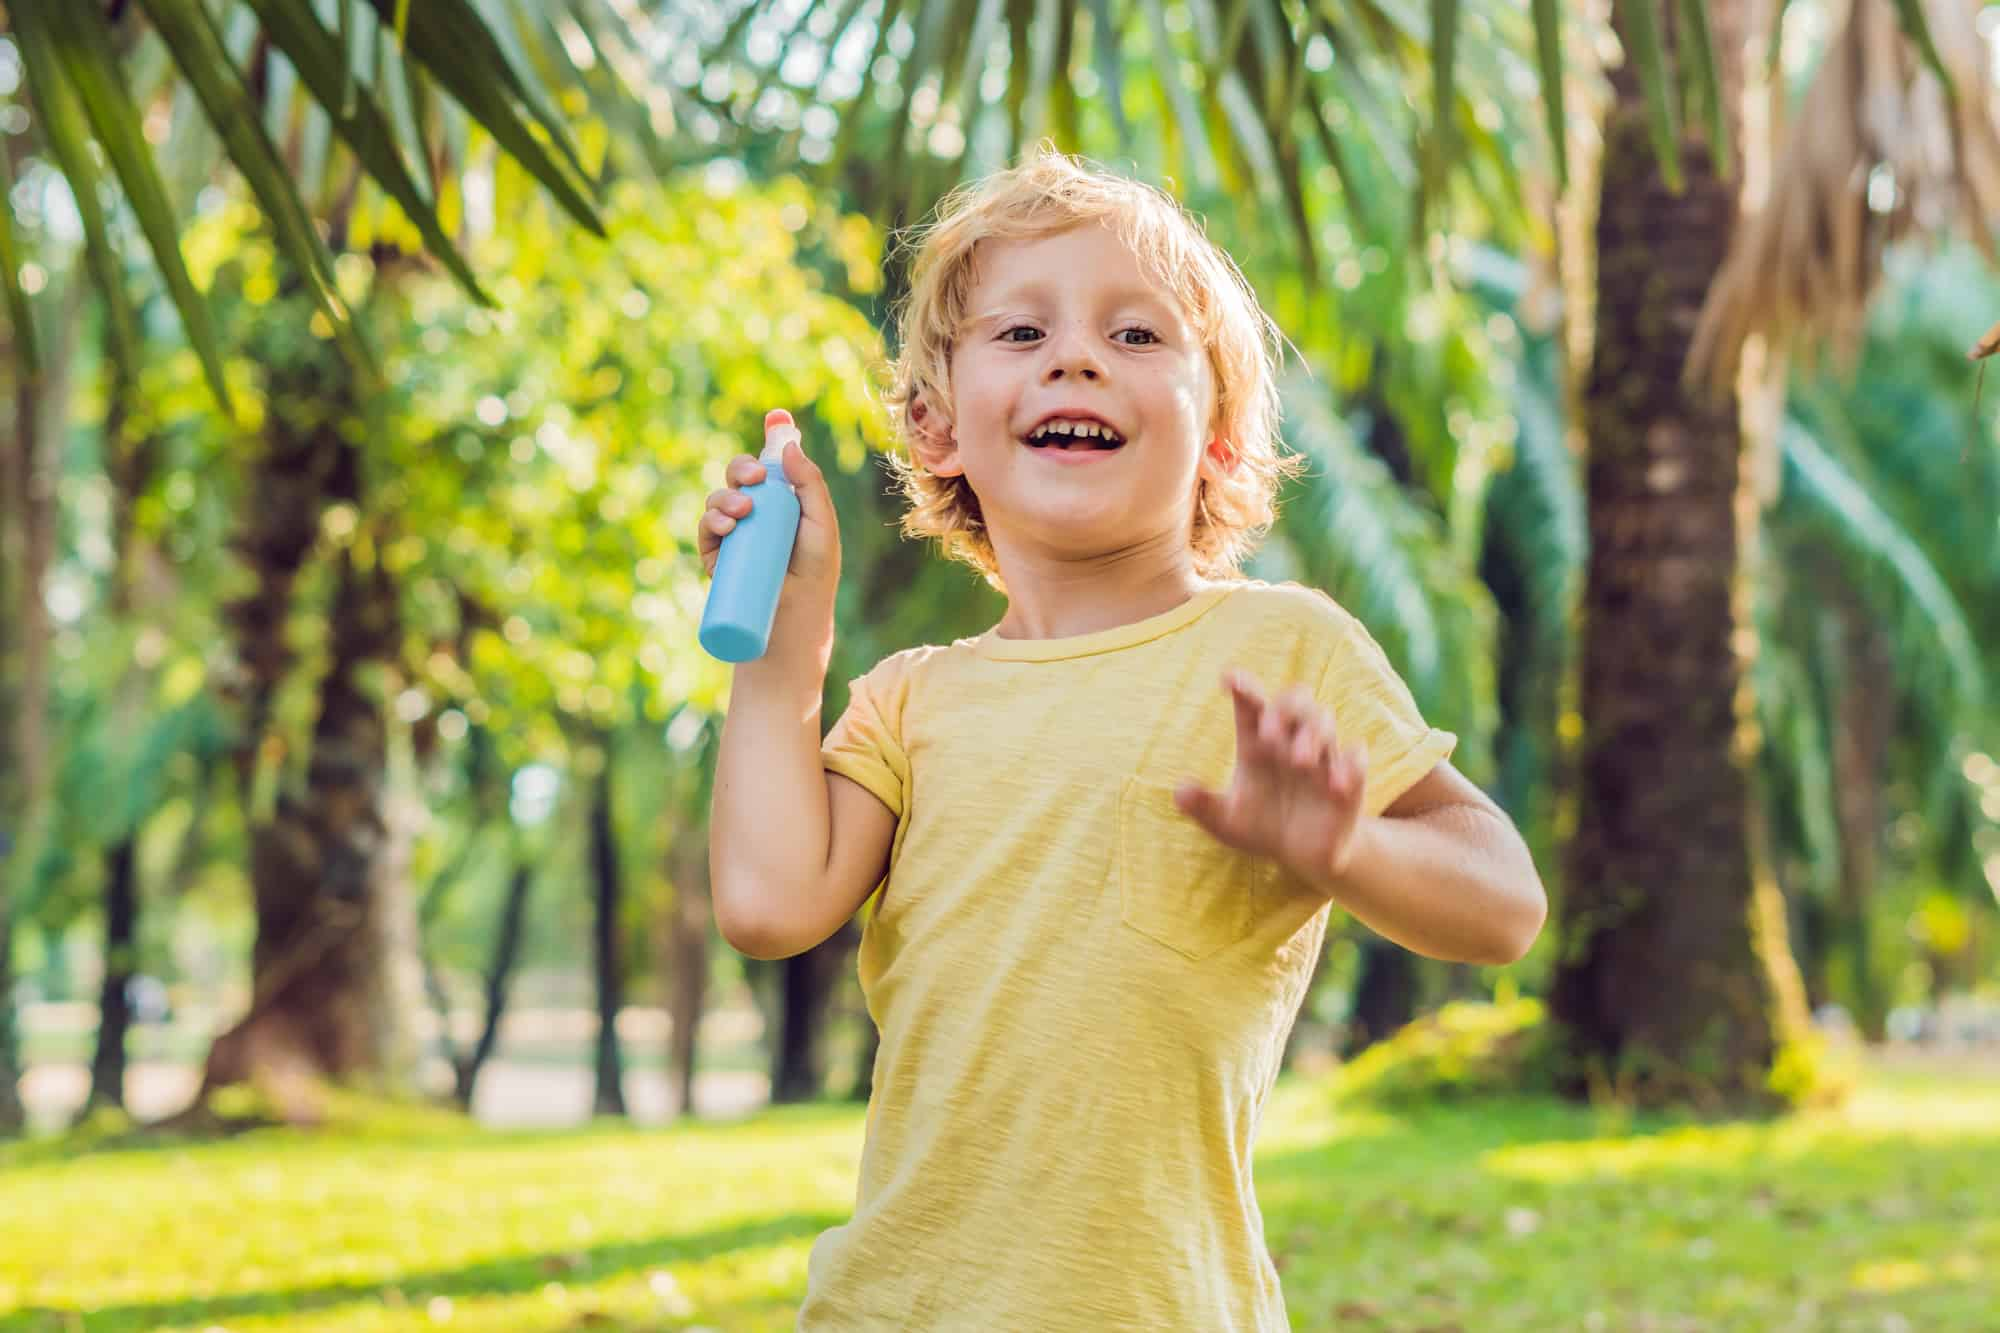 Boy spraying insect repellents on skin in the park